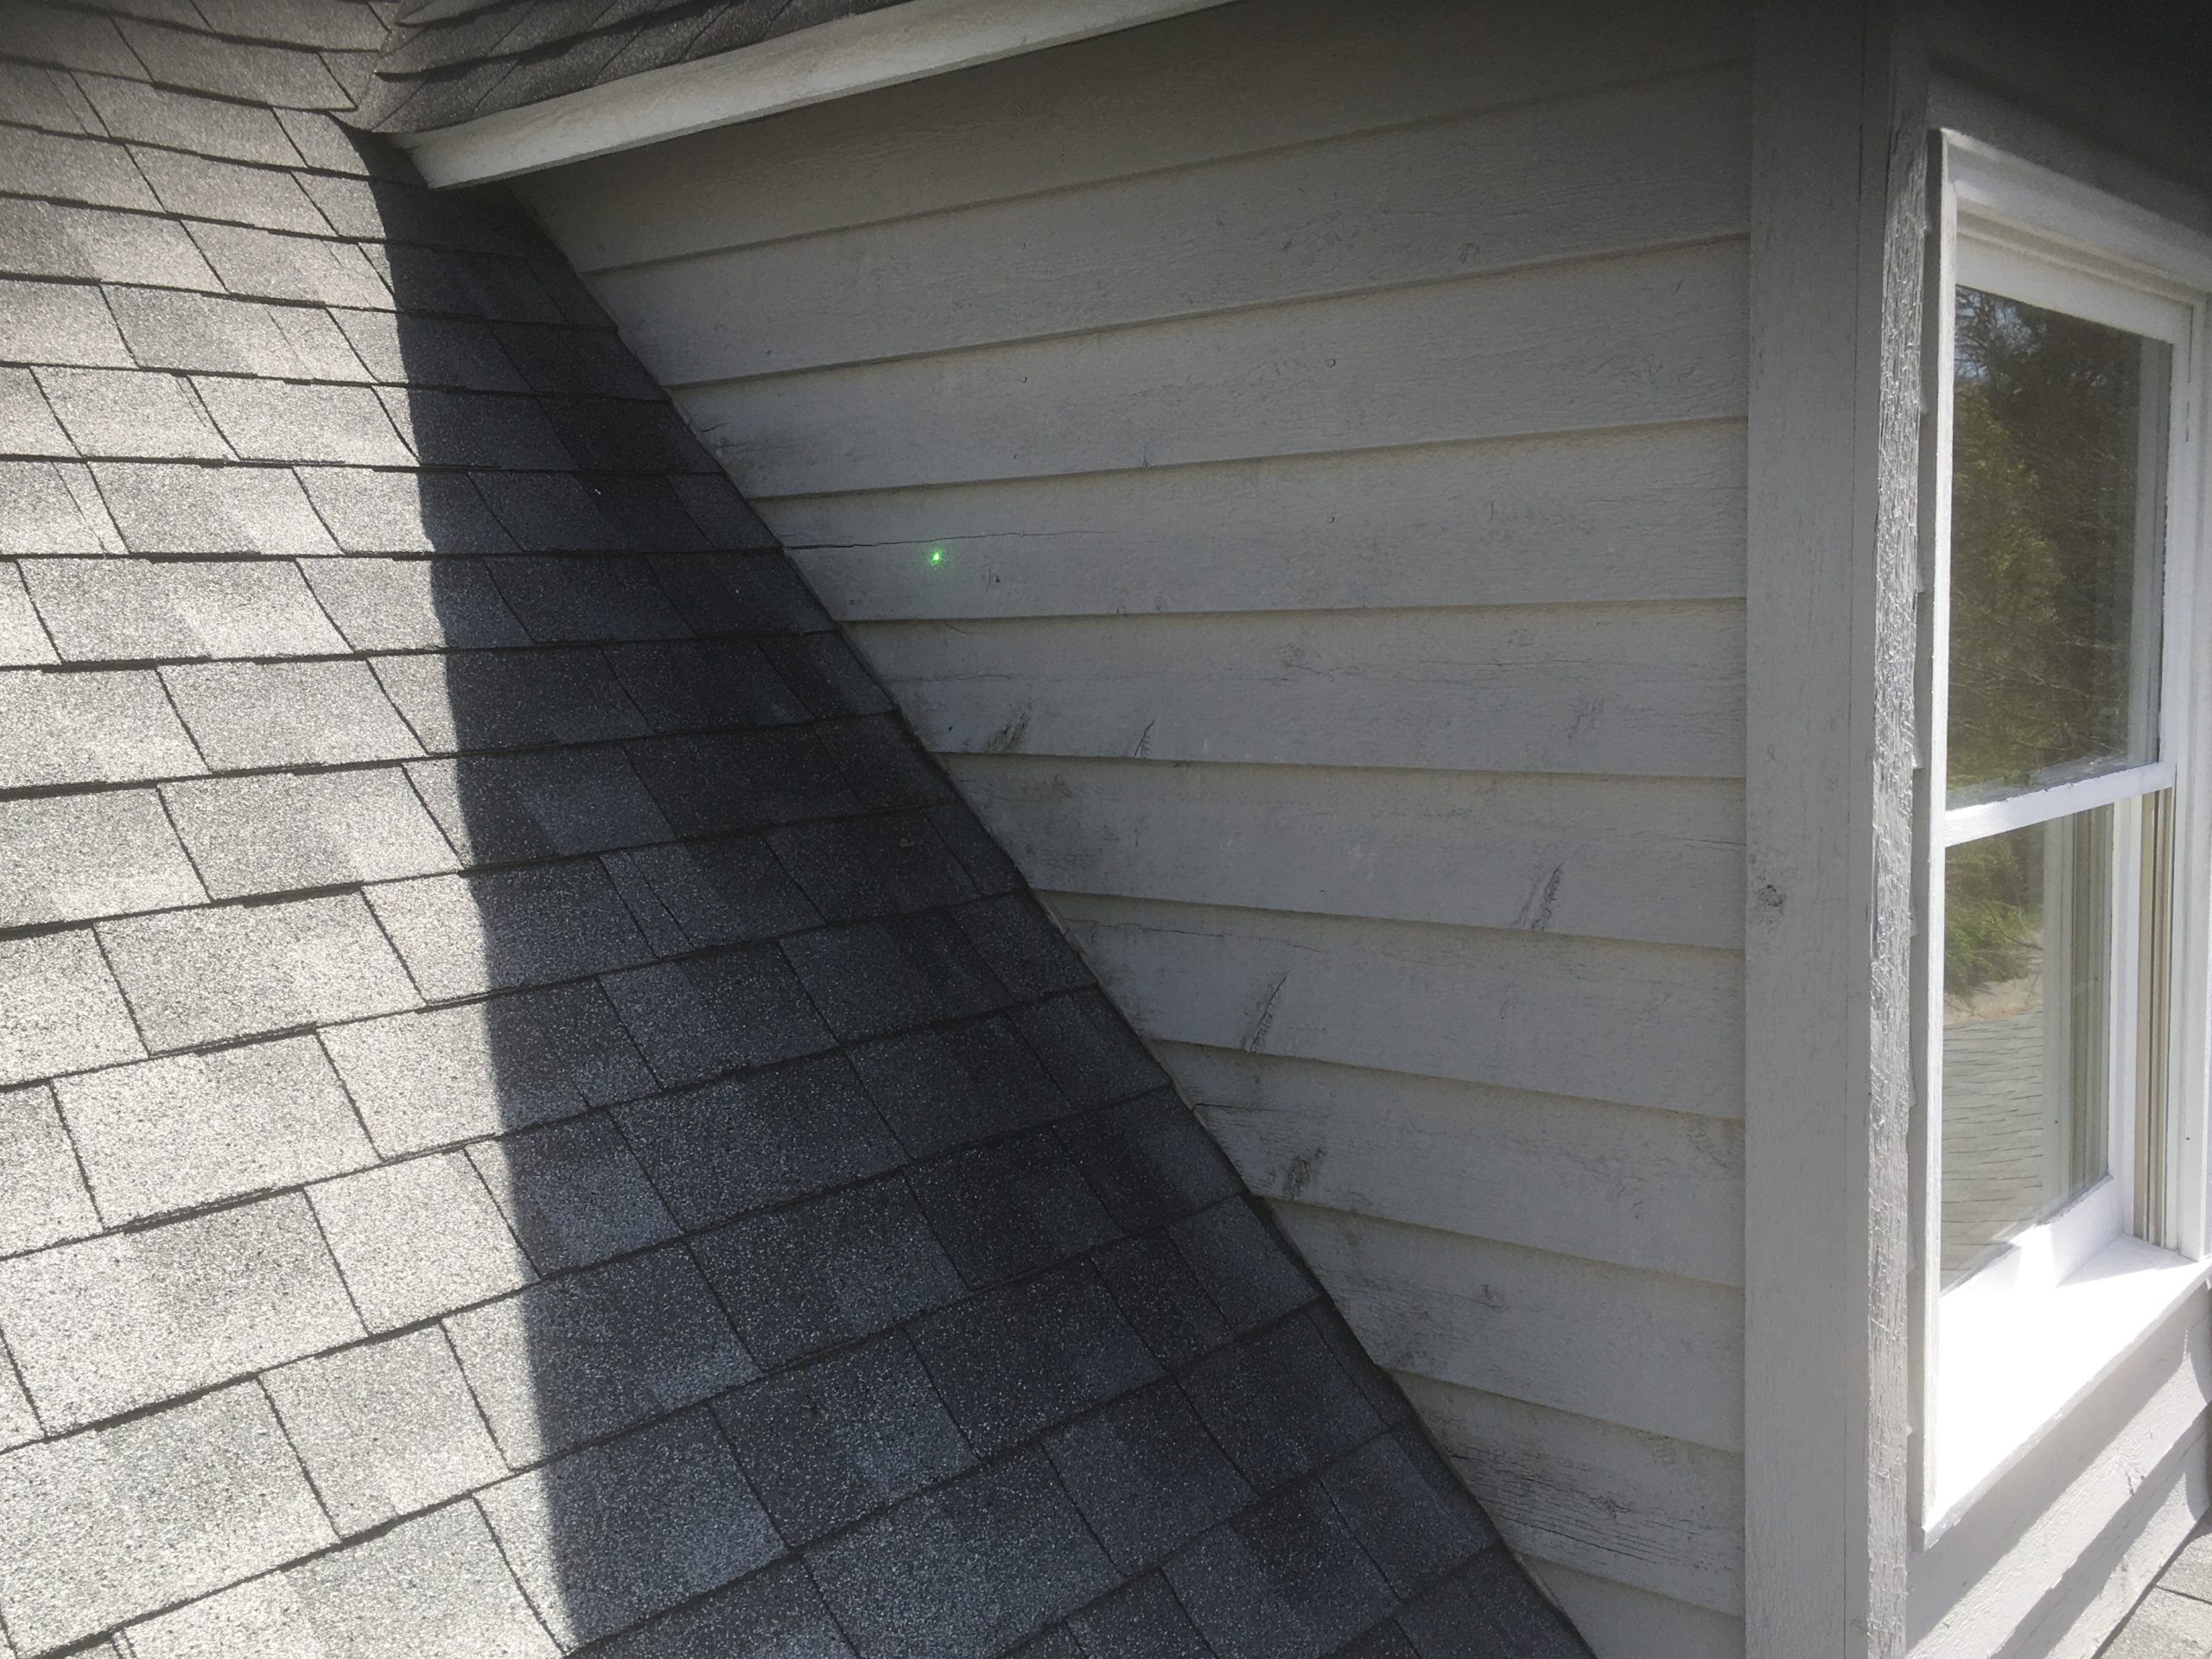 Cracks on roof siding